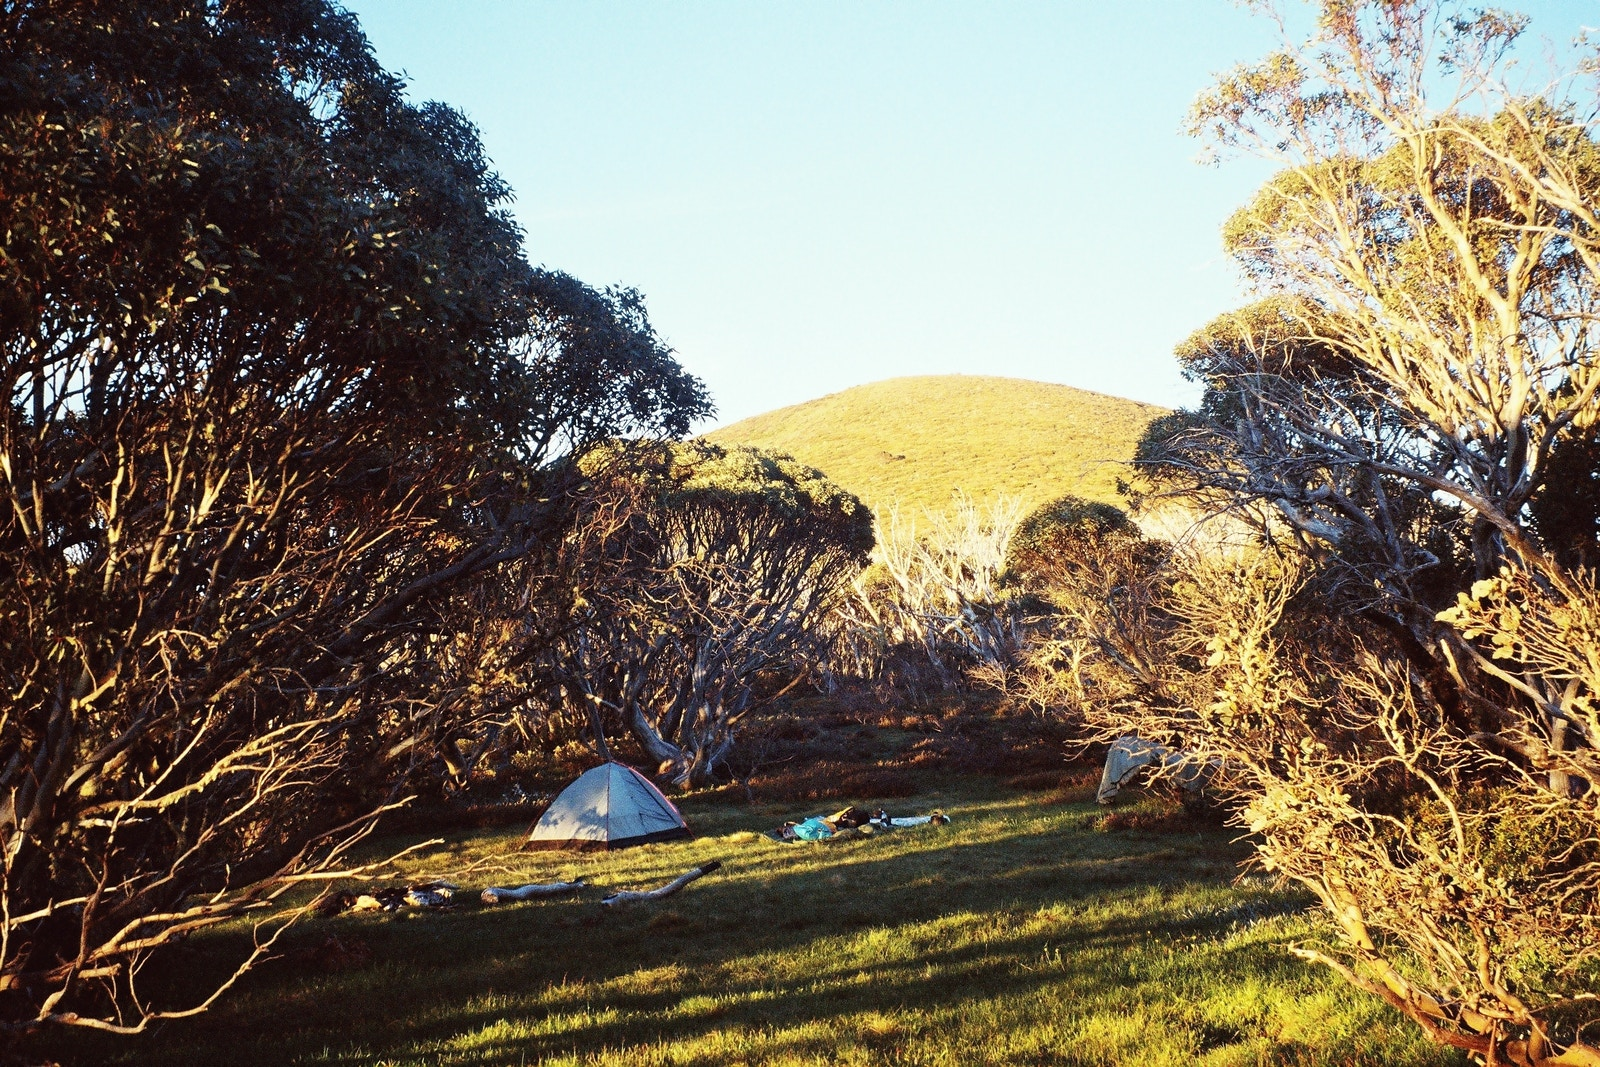 The campsite near the top of Diamantina Spur where it is proposed to build the new huts. Photo © Taariq Hassan, 2017